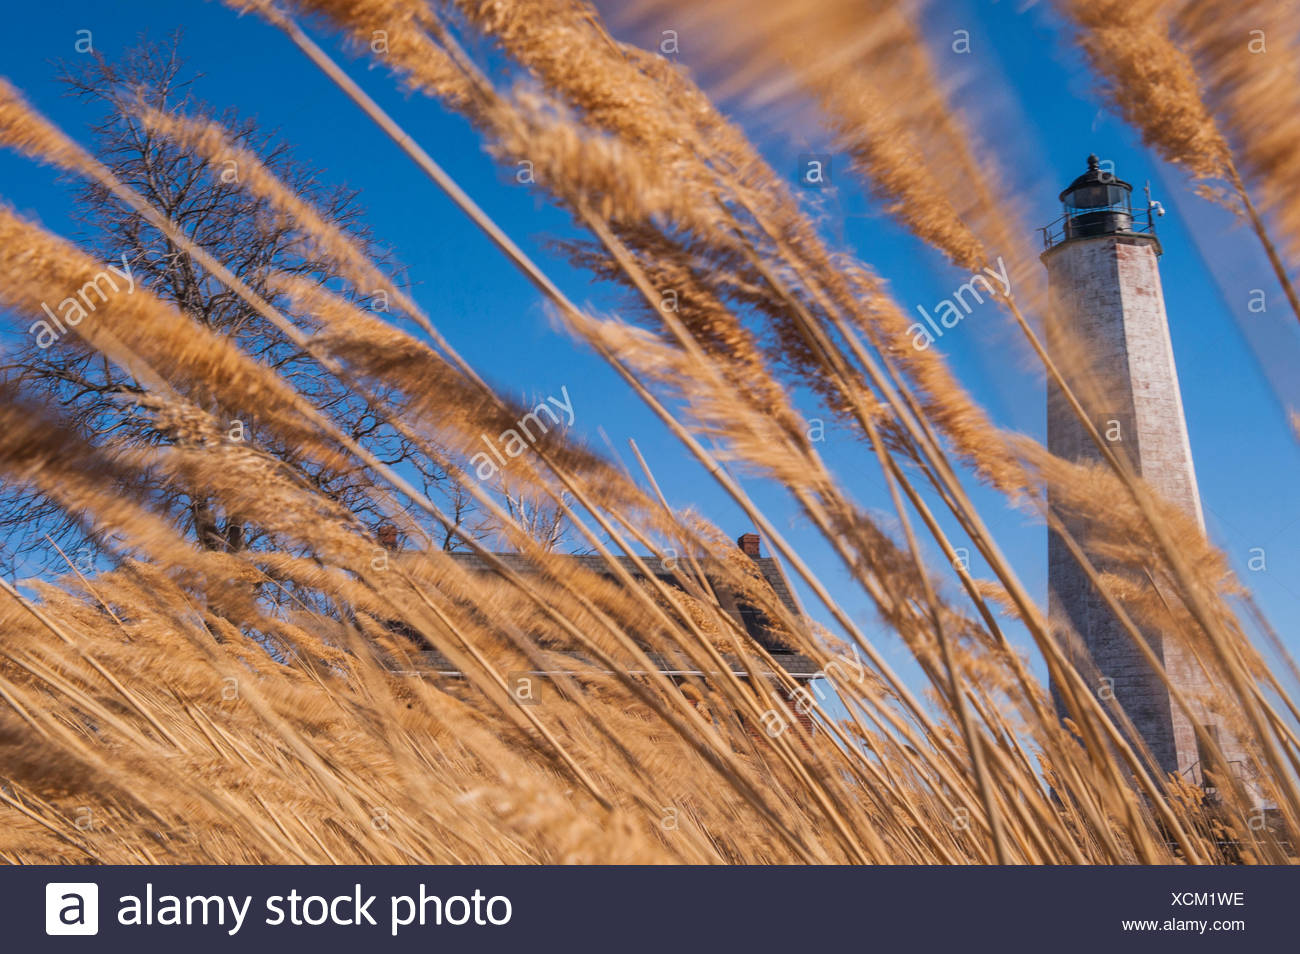 Strong winds blow reeds in front of the File Mile Point Lighthouse. Stock Photo